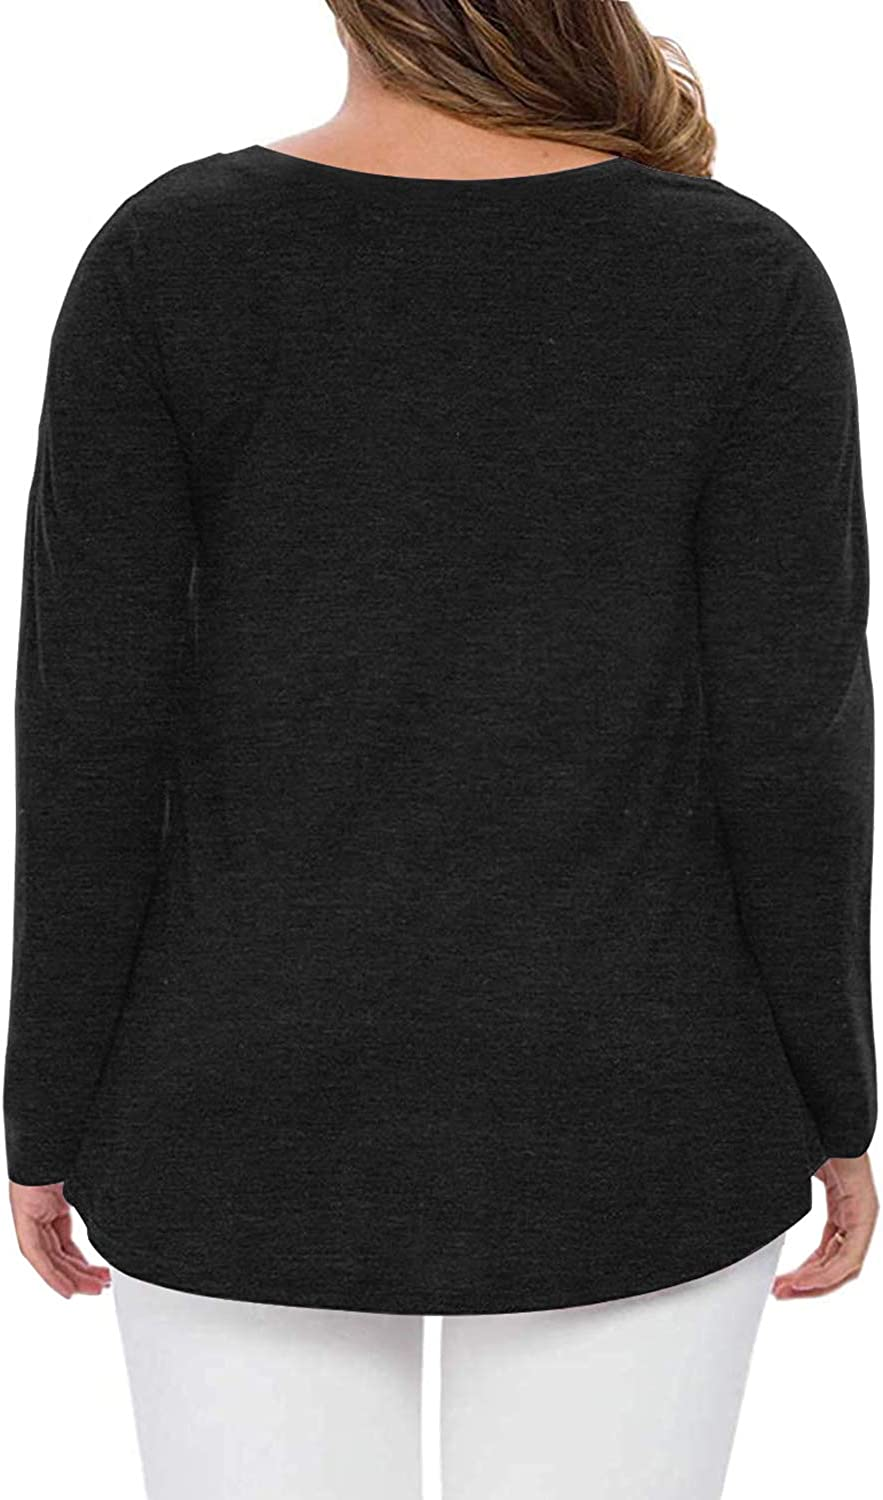 QUEEN PLUS Women's Plus Size Fall Long Sleeve Tunic Tops V-Neck Casual Blouse T-Shirts